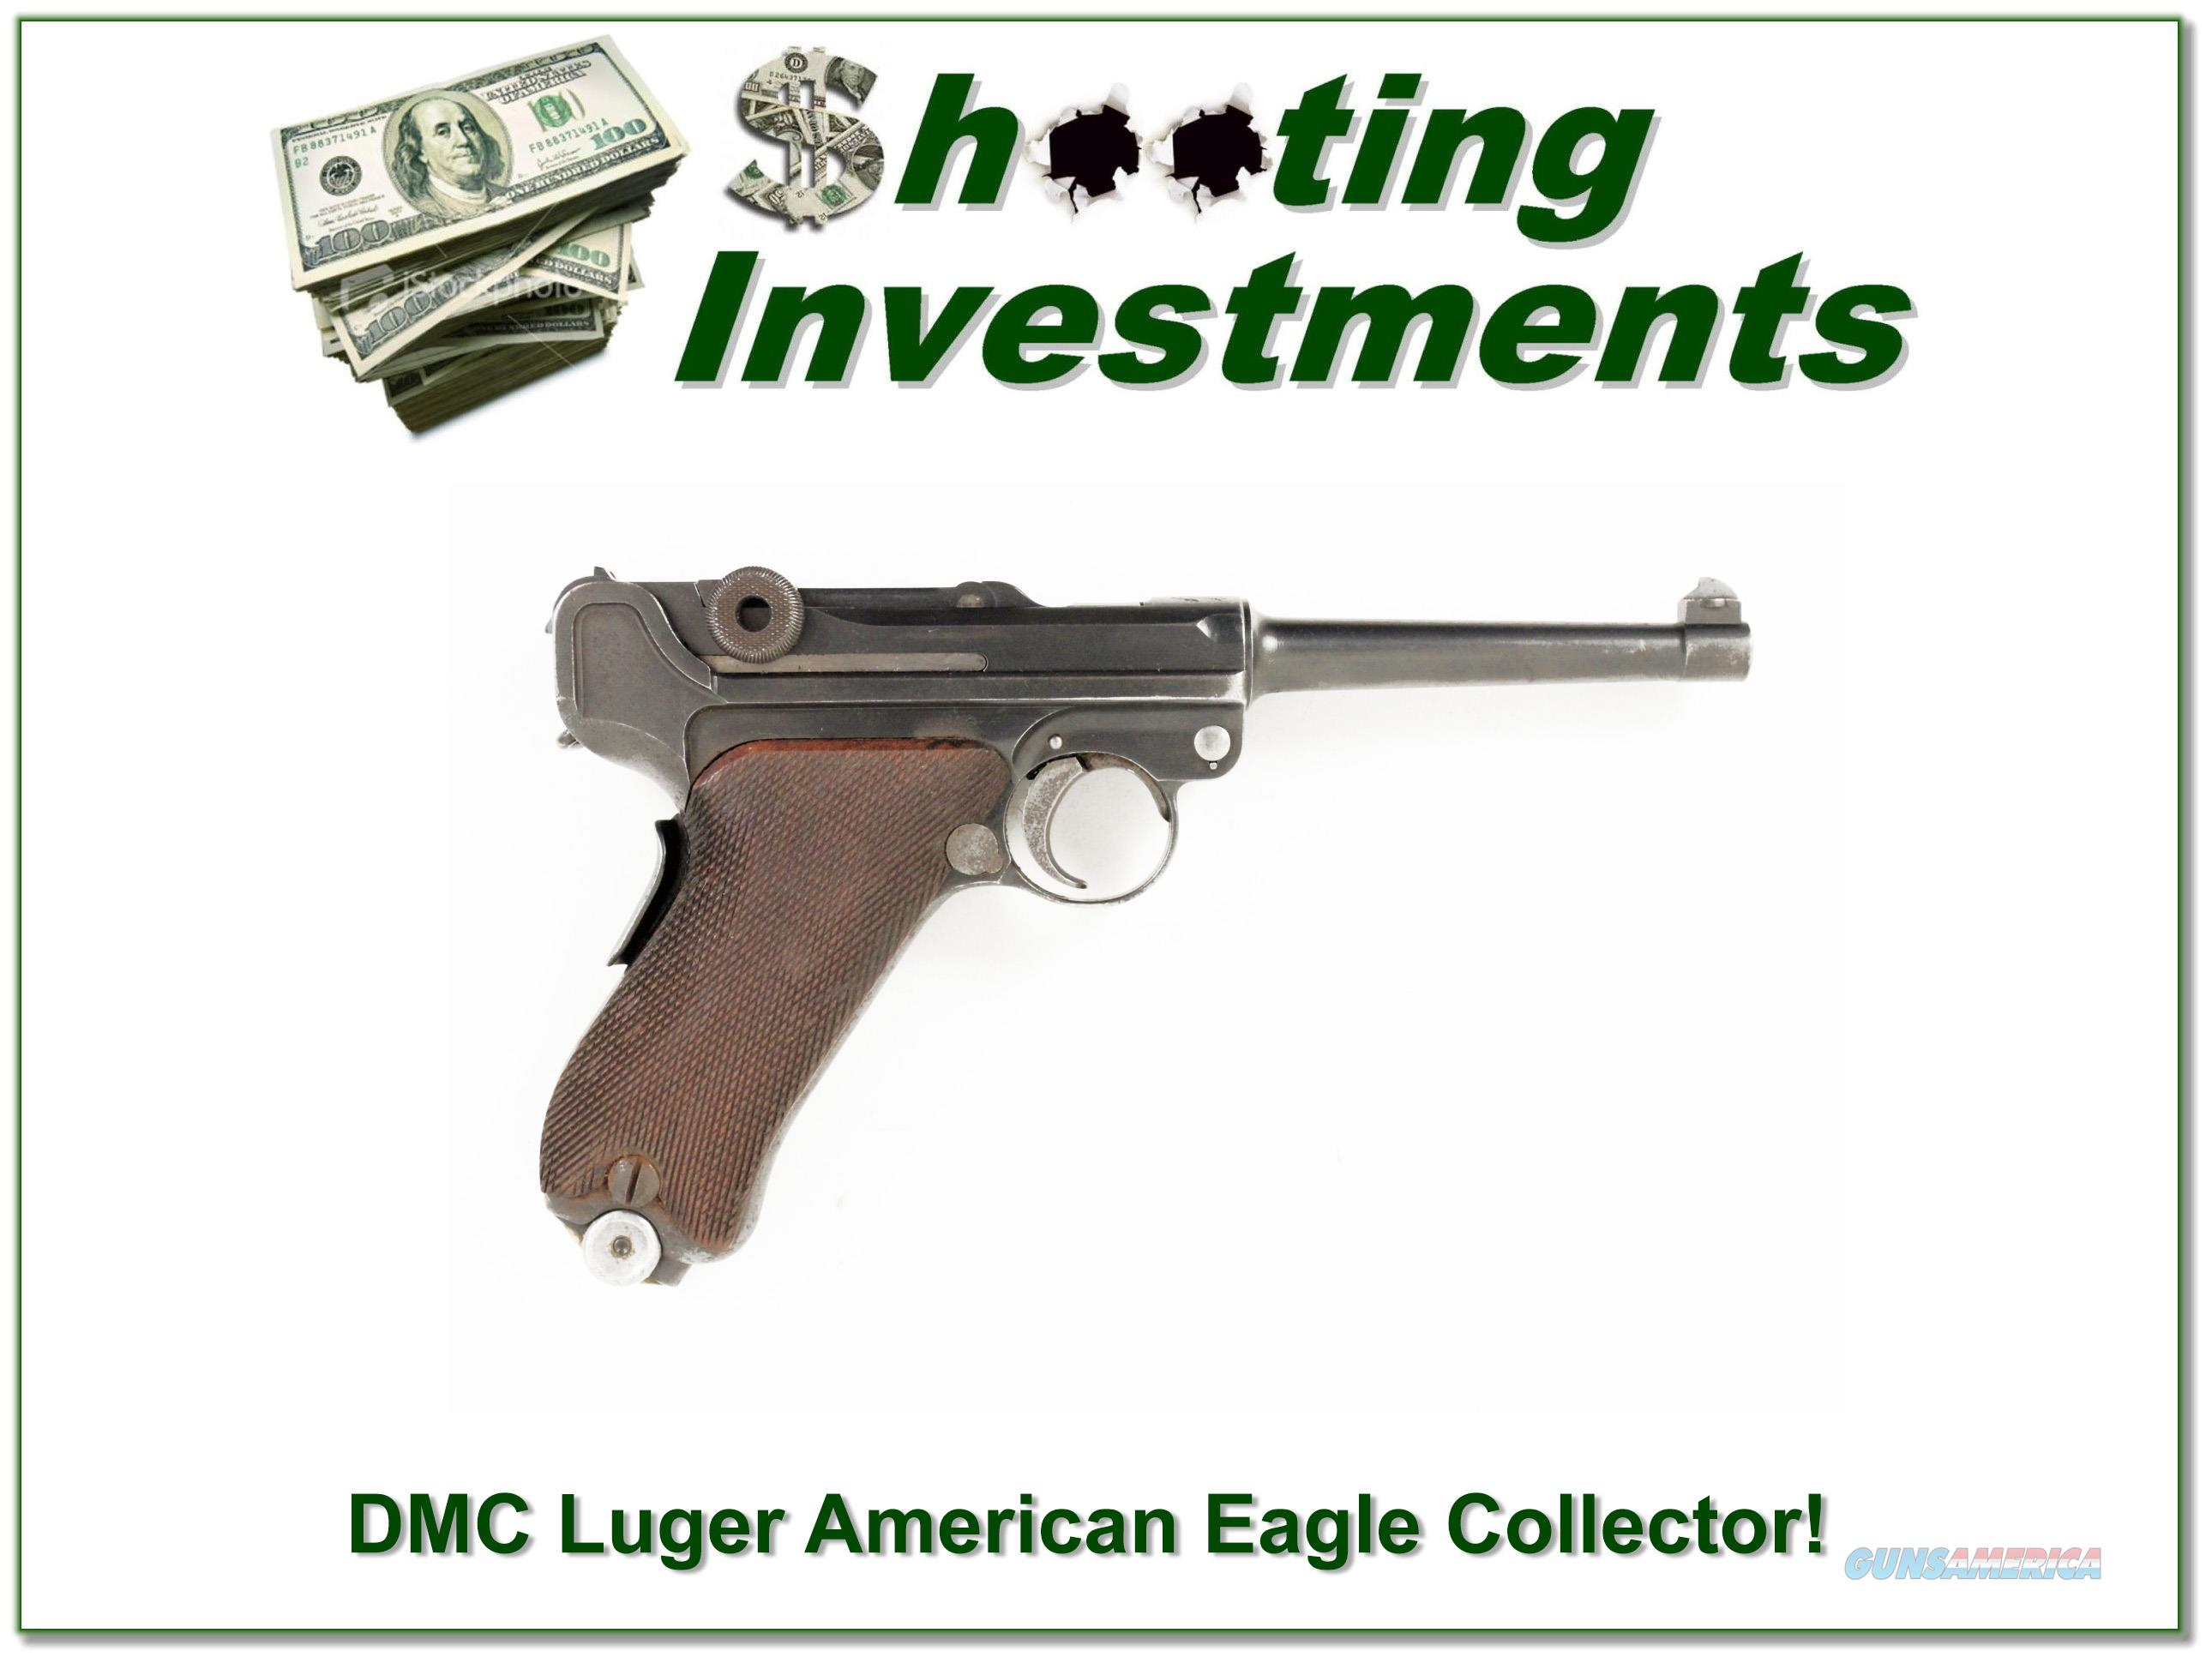 1906 DMC Luger American Eagle Collector!  Guns > Pistols > Luger Pistols